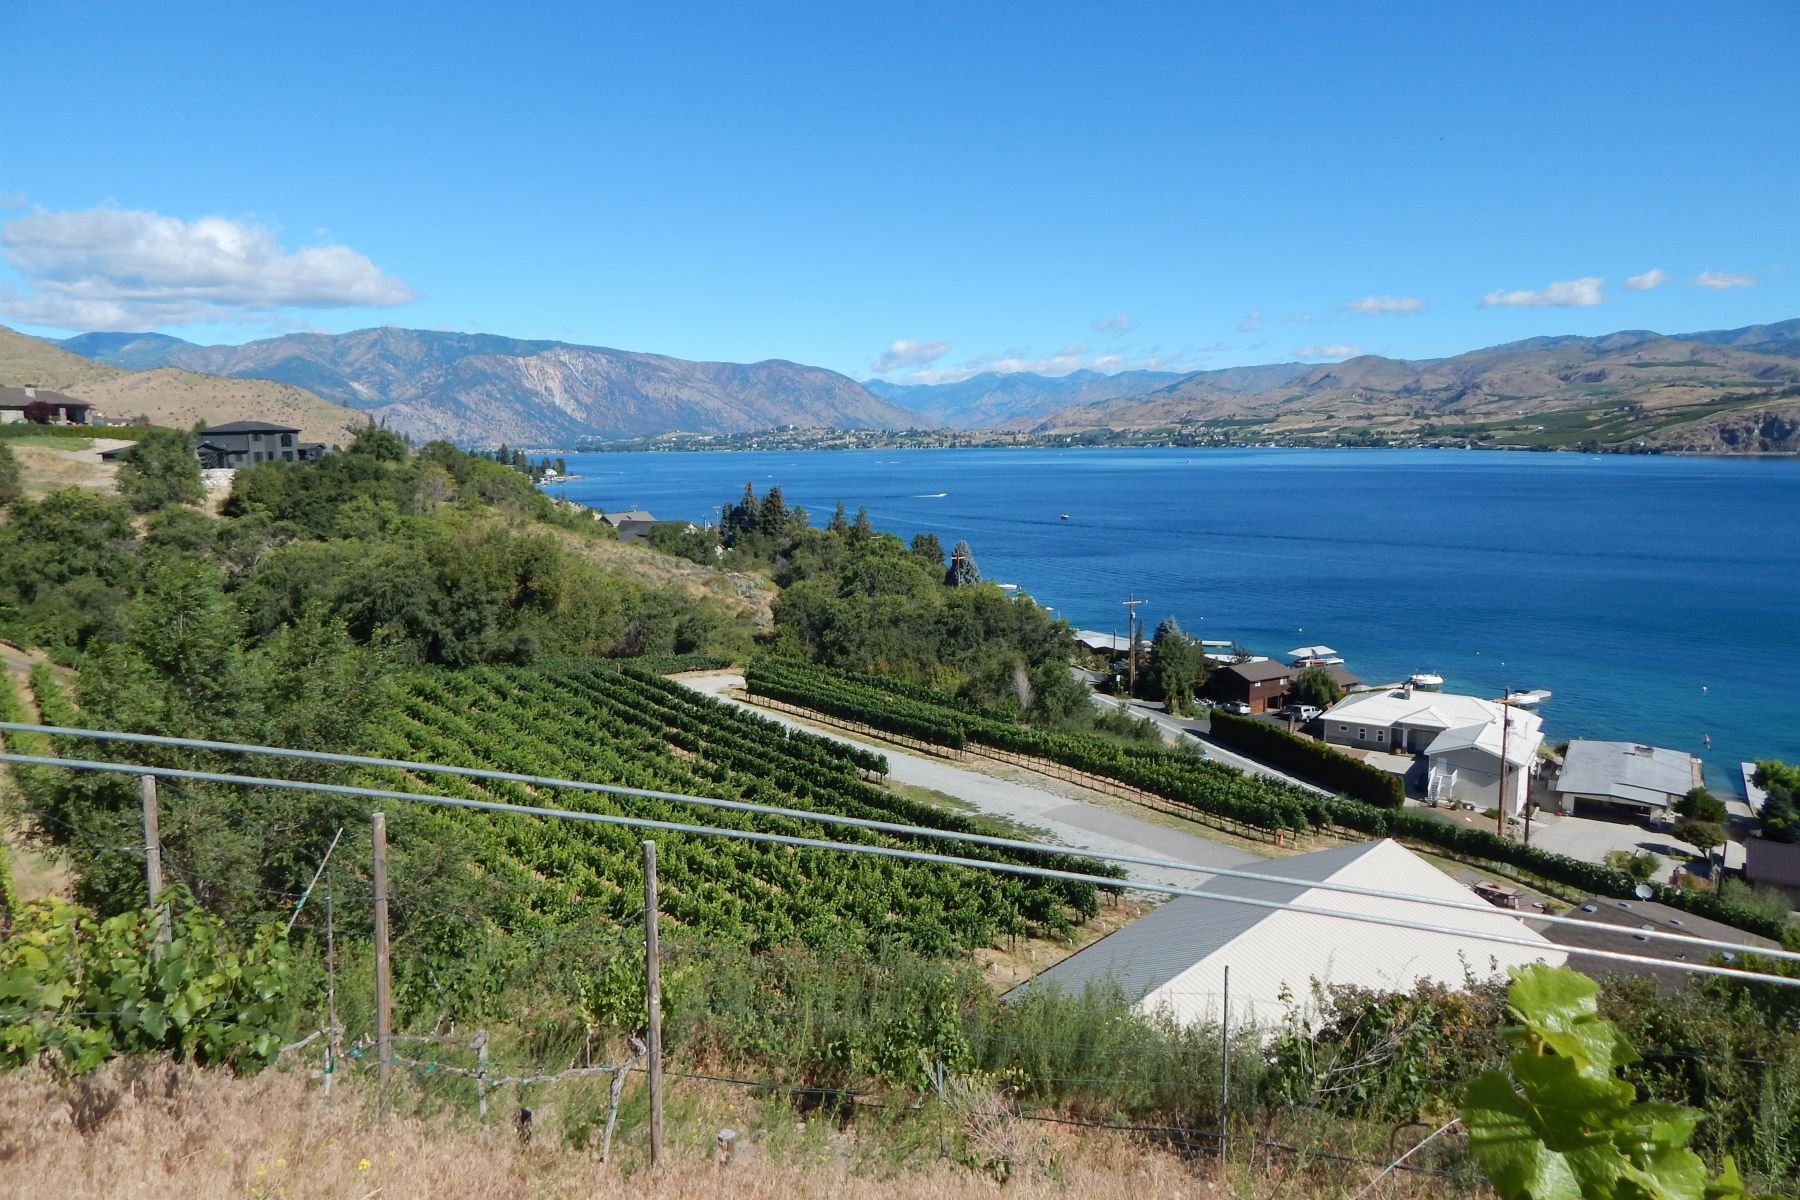 Vineyard for Sale at Chelan Estate Winery 755 S Lakeshore Dr Chelan, Washington 98816 United States